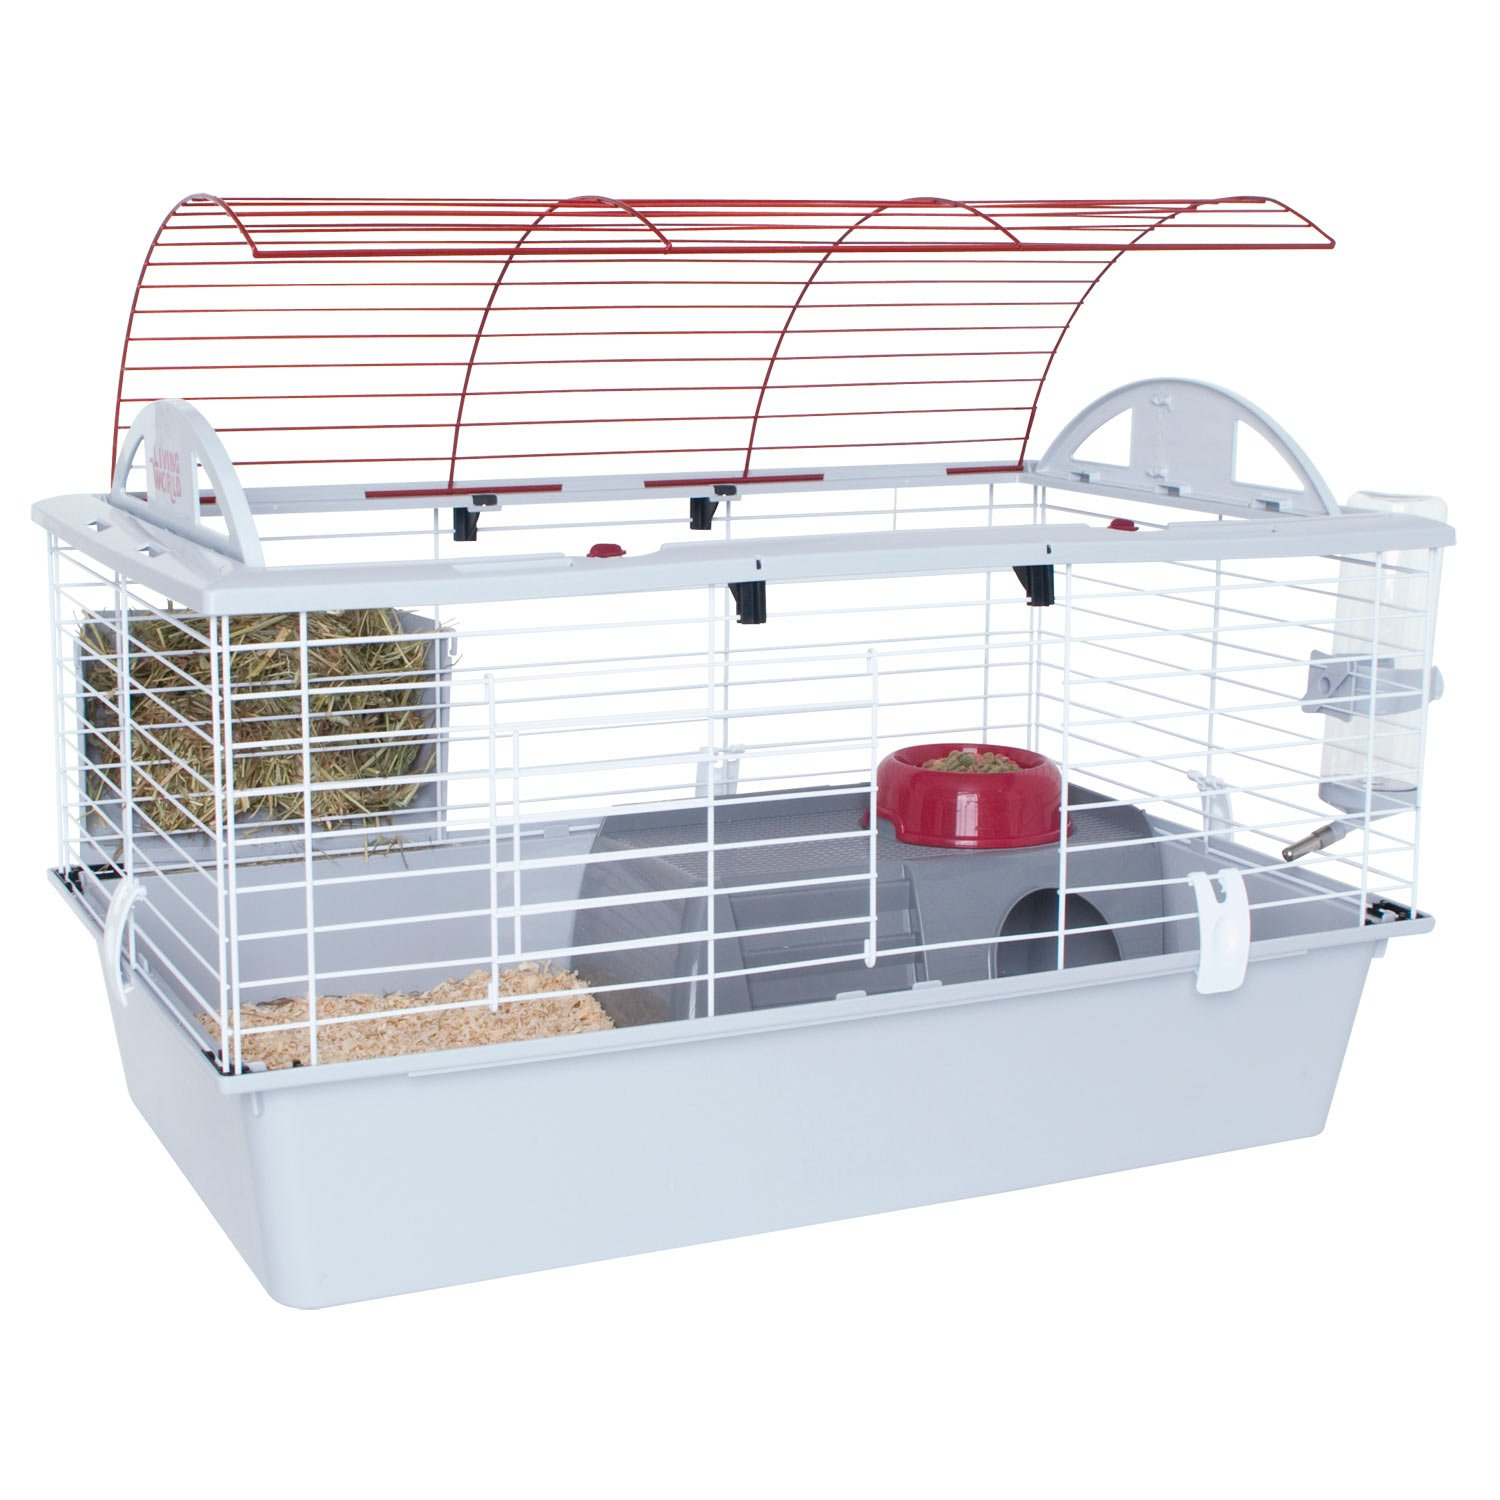 Hagen Living World Deluxe Habitat | Petco